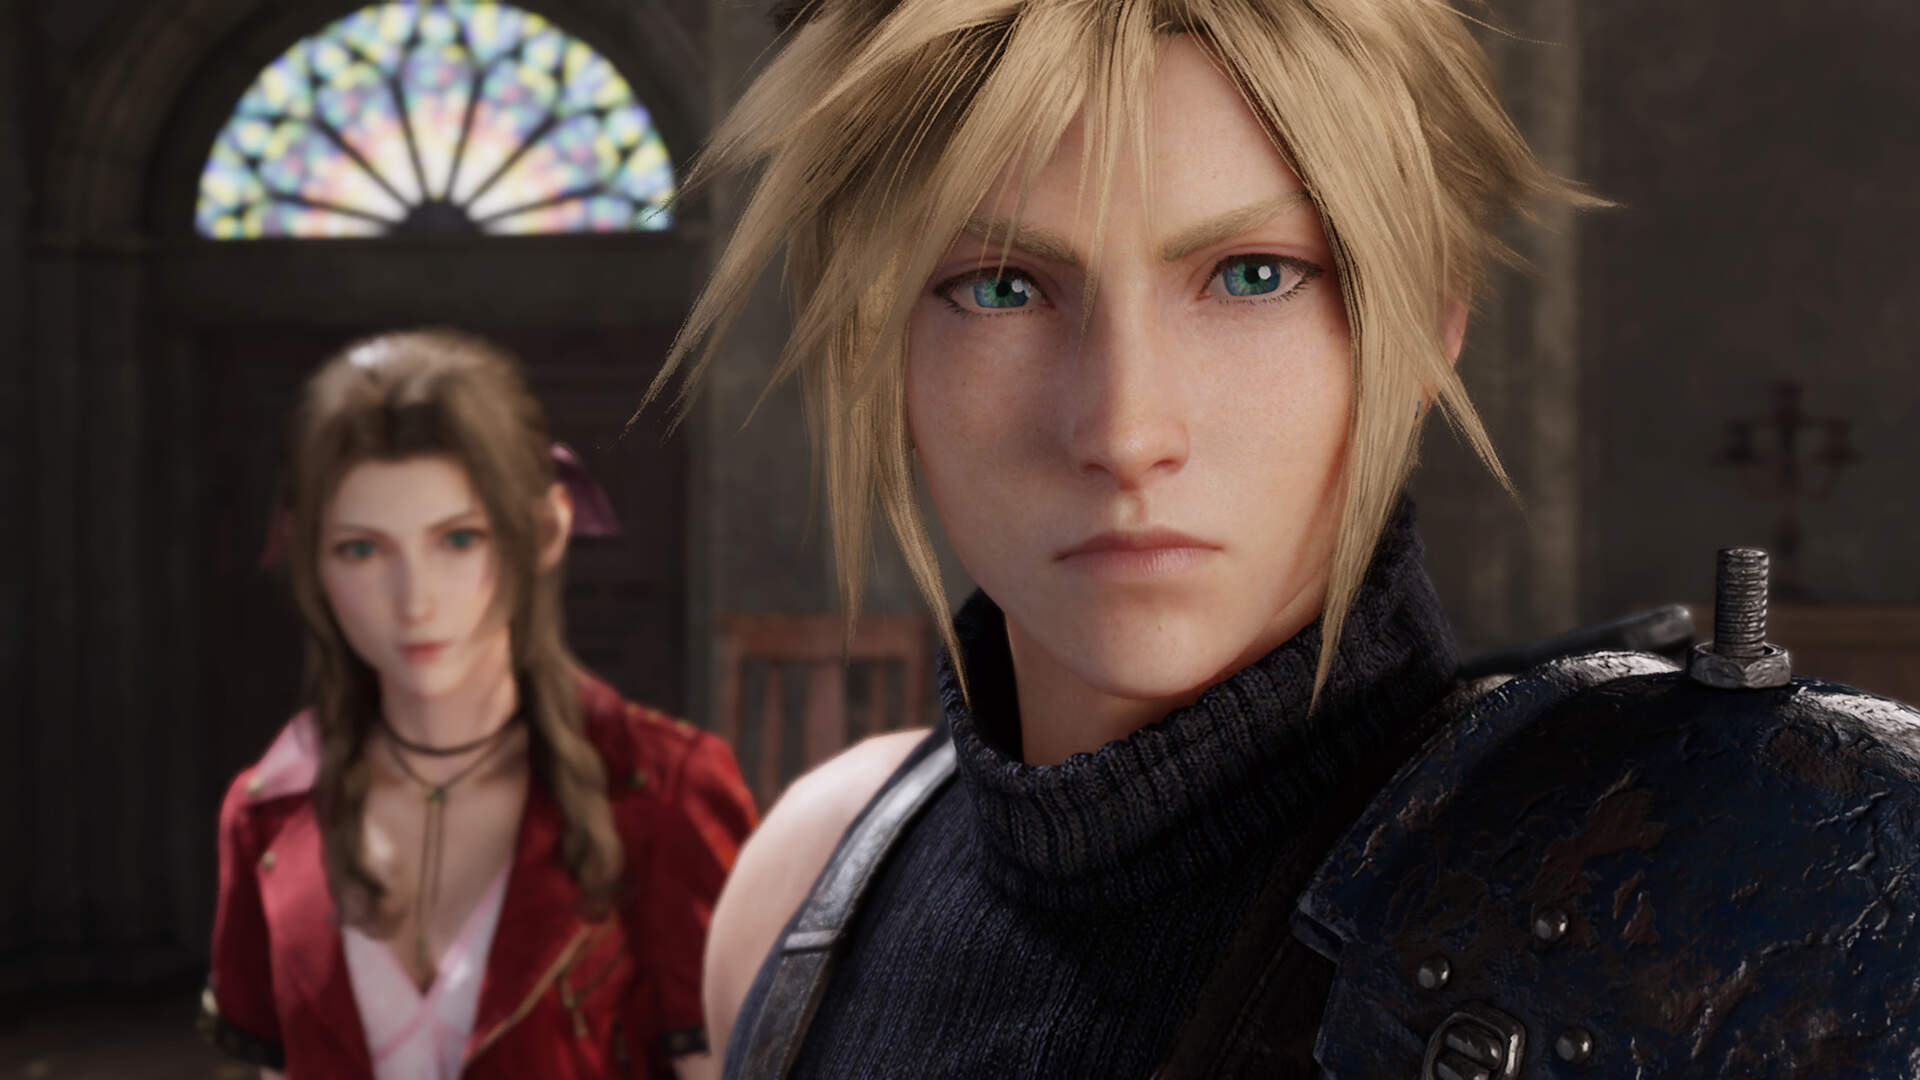 Final Fantasy 7 Remake Length: How Many Chapters Are There?